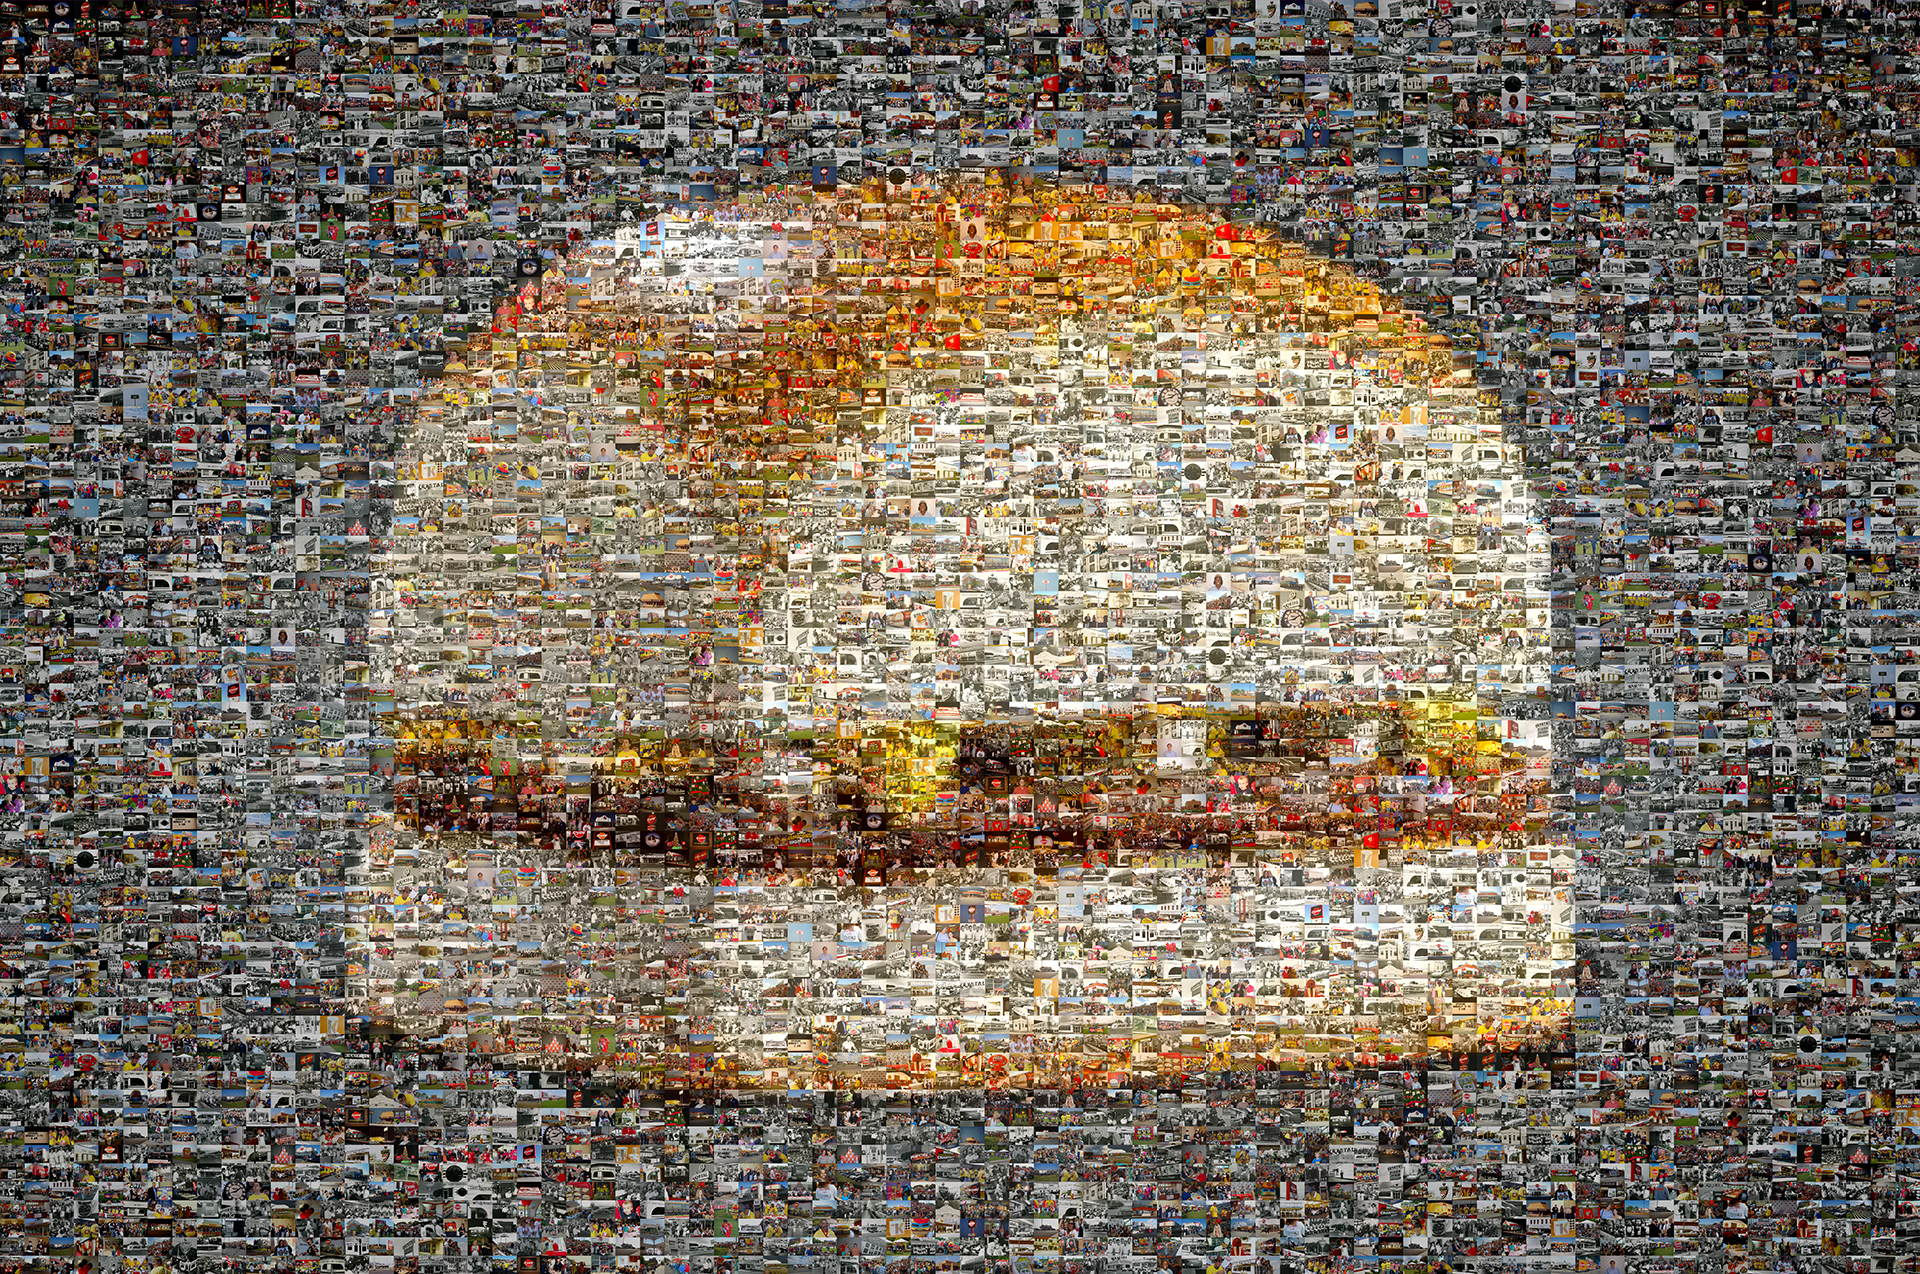 photo mosaic to celebrate 80 years of business, this mosaic was created using 745 photos